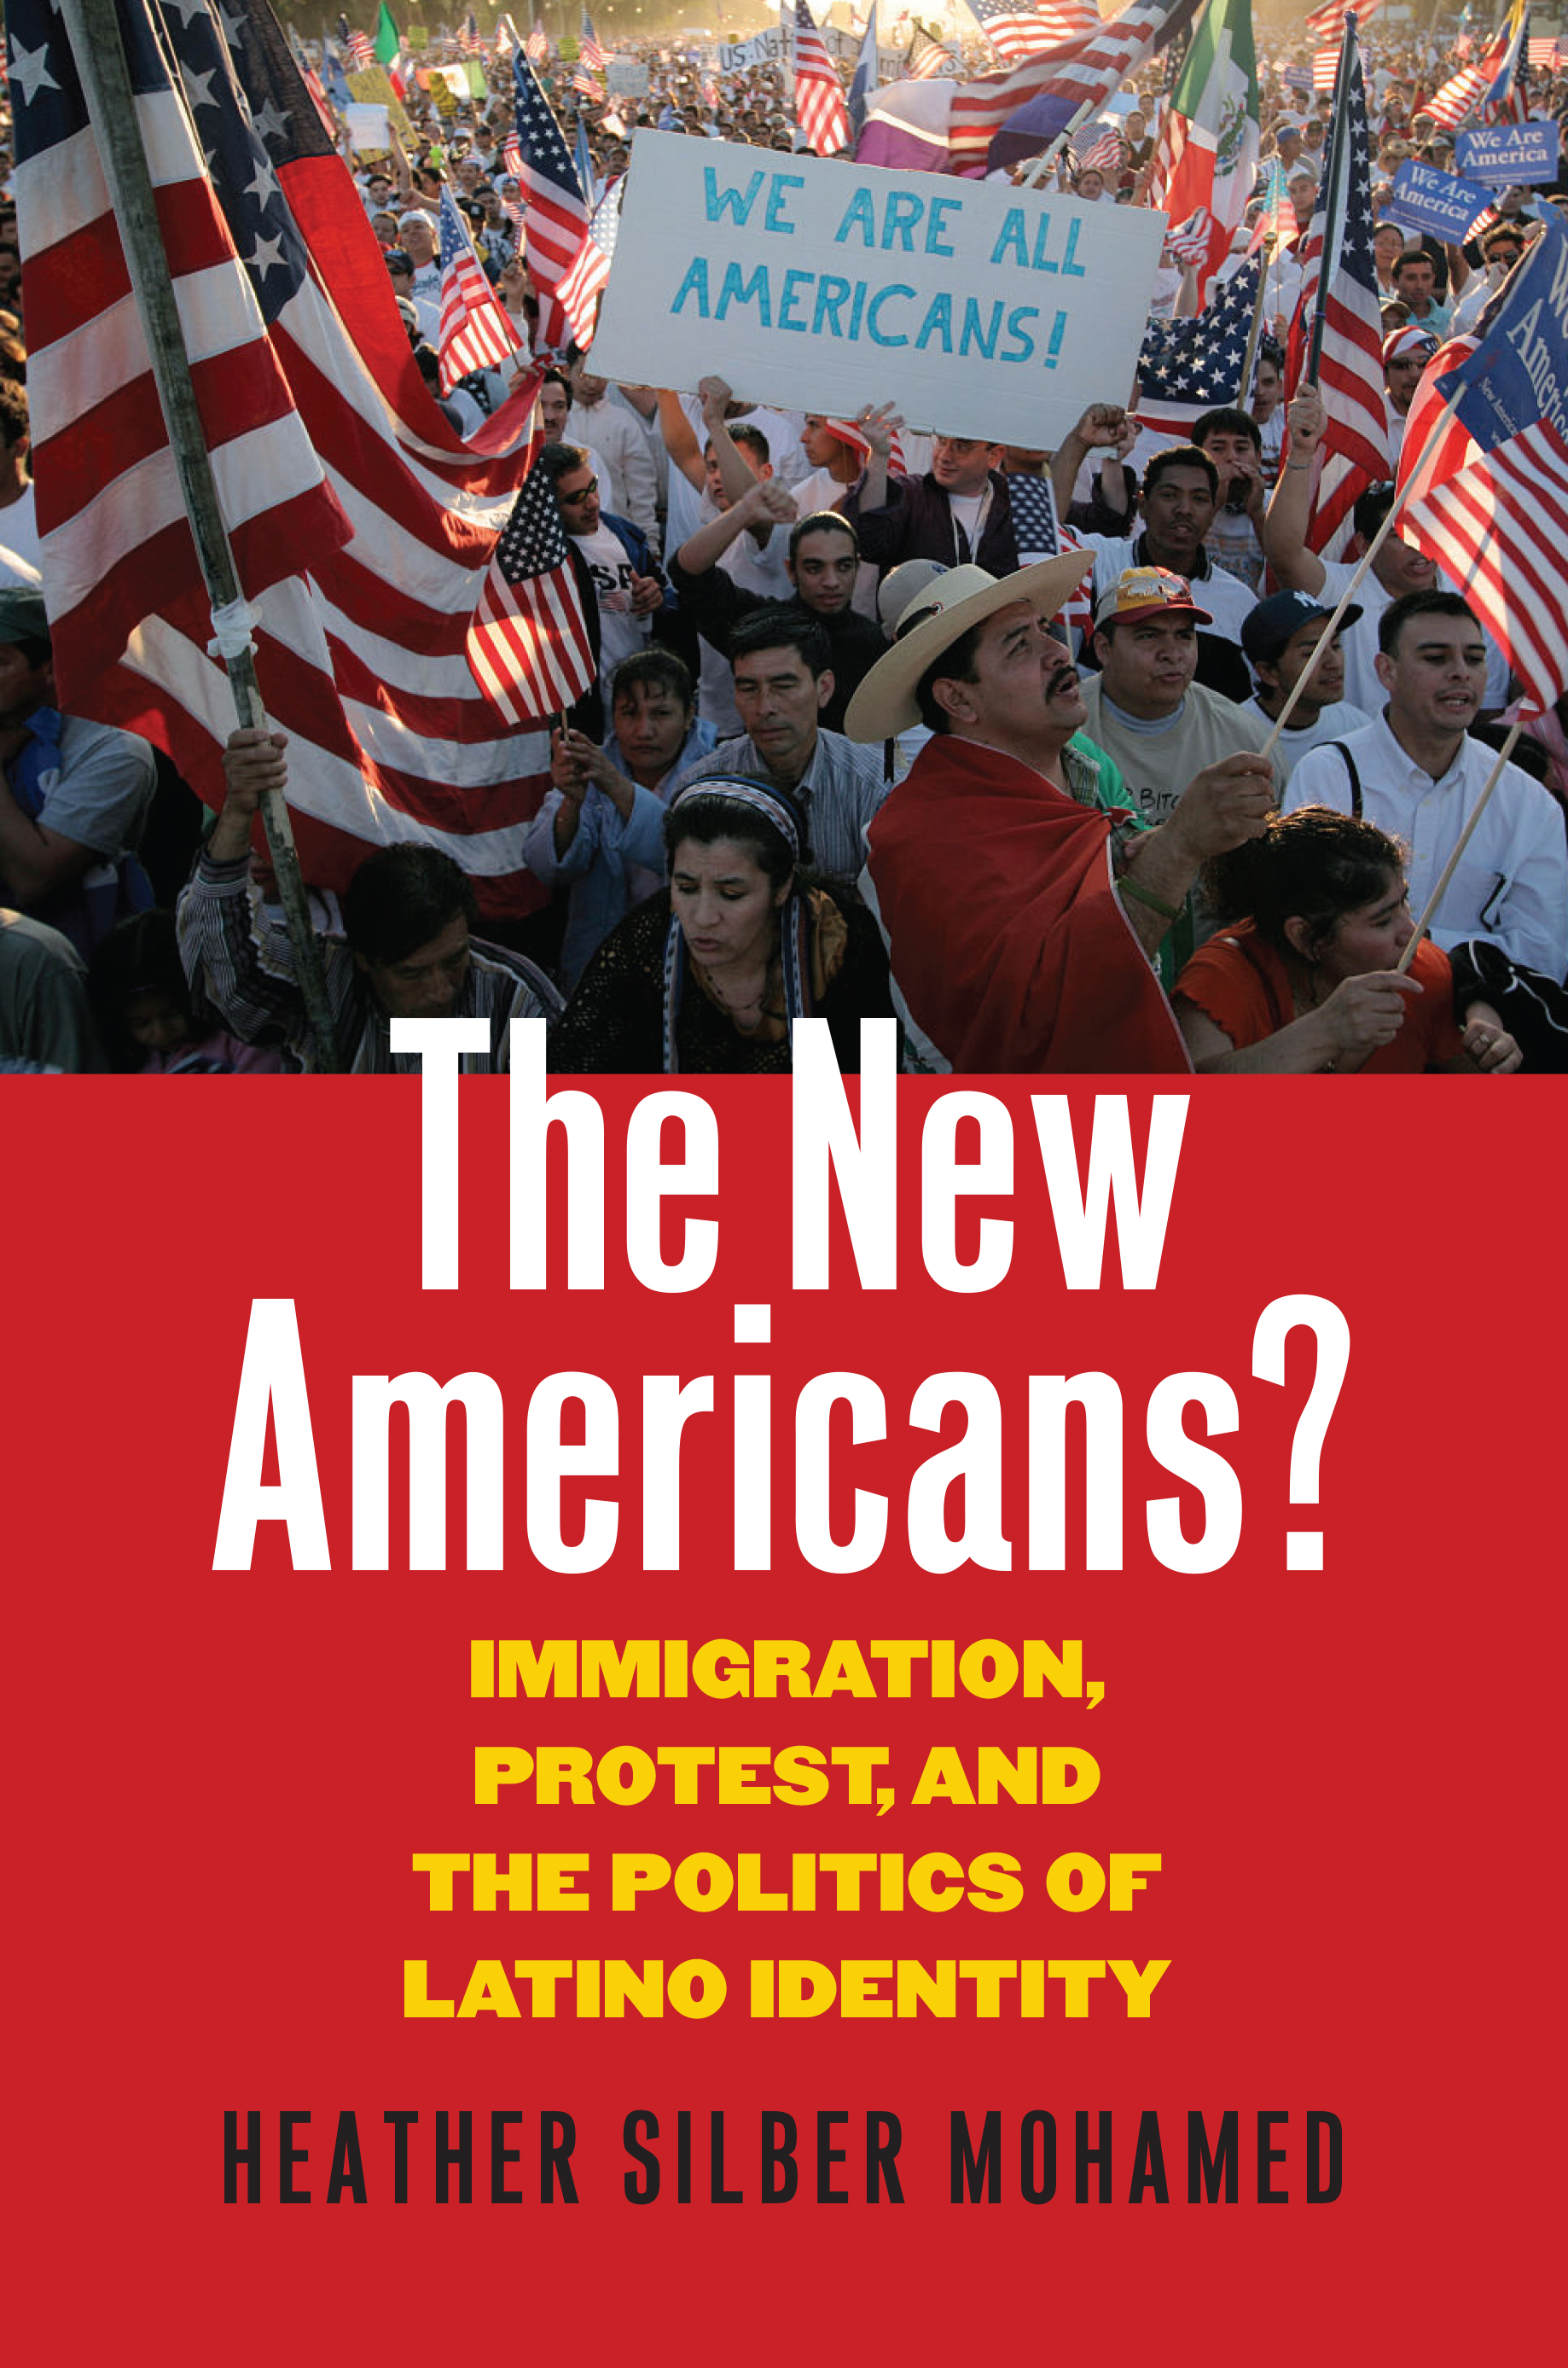 The New Americans? Immigration, Protest, and the Politics of Latino Identity